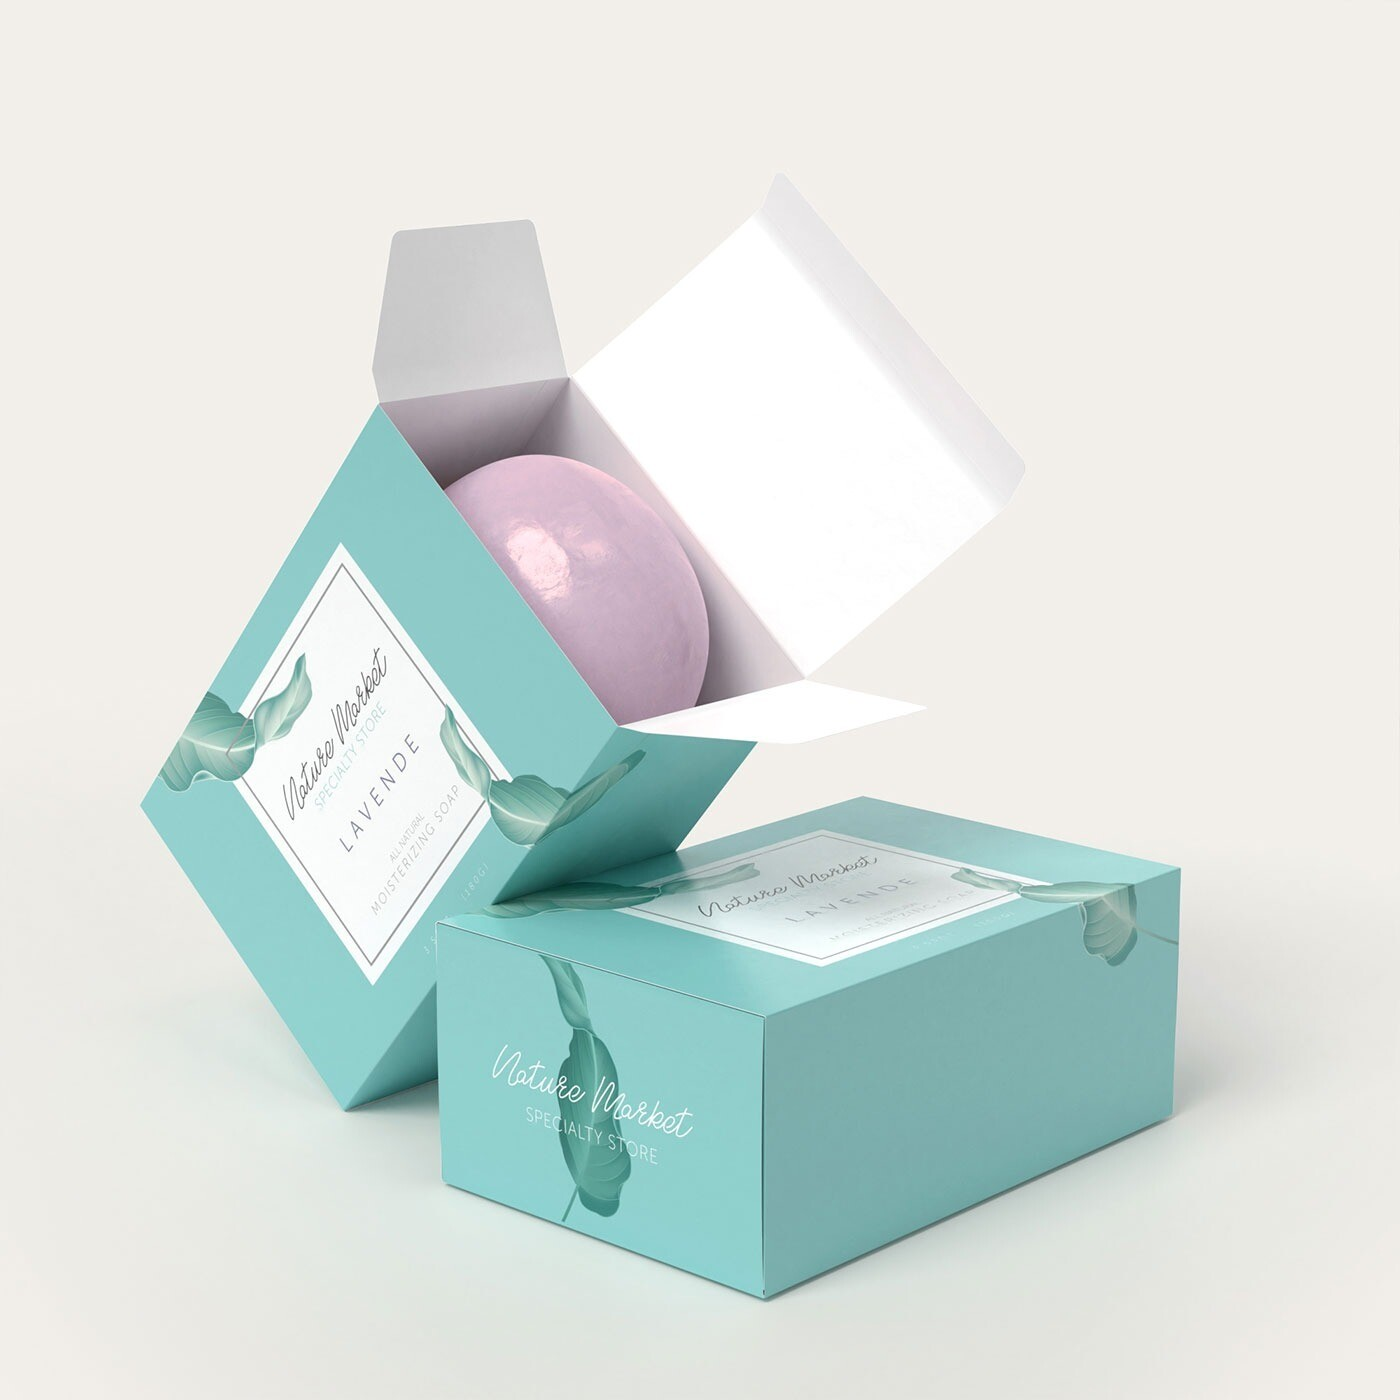 Custom Soap Boxes for Product Launch